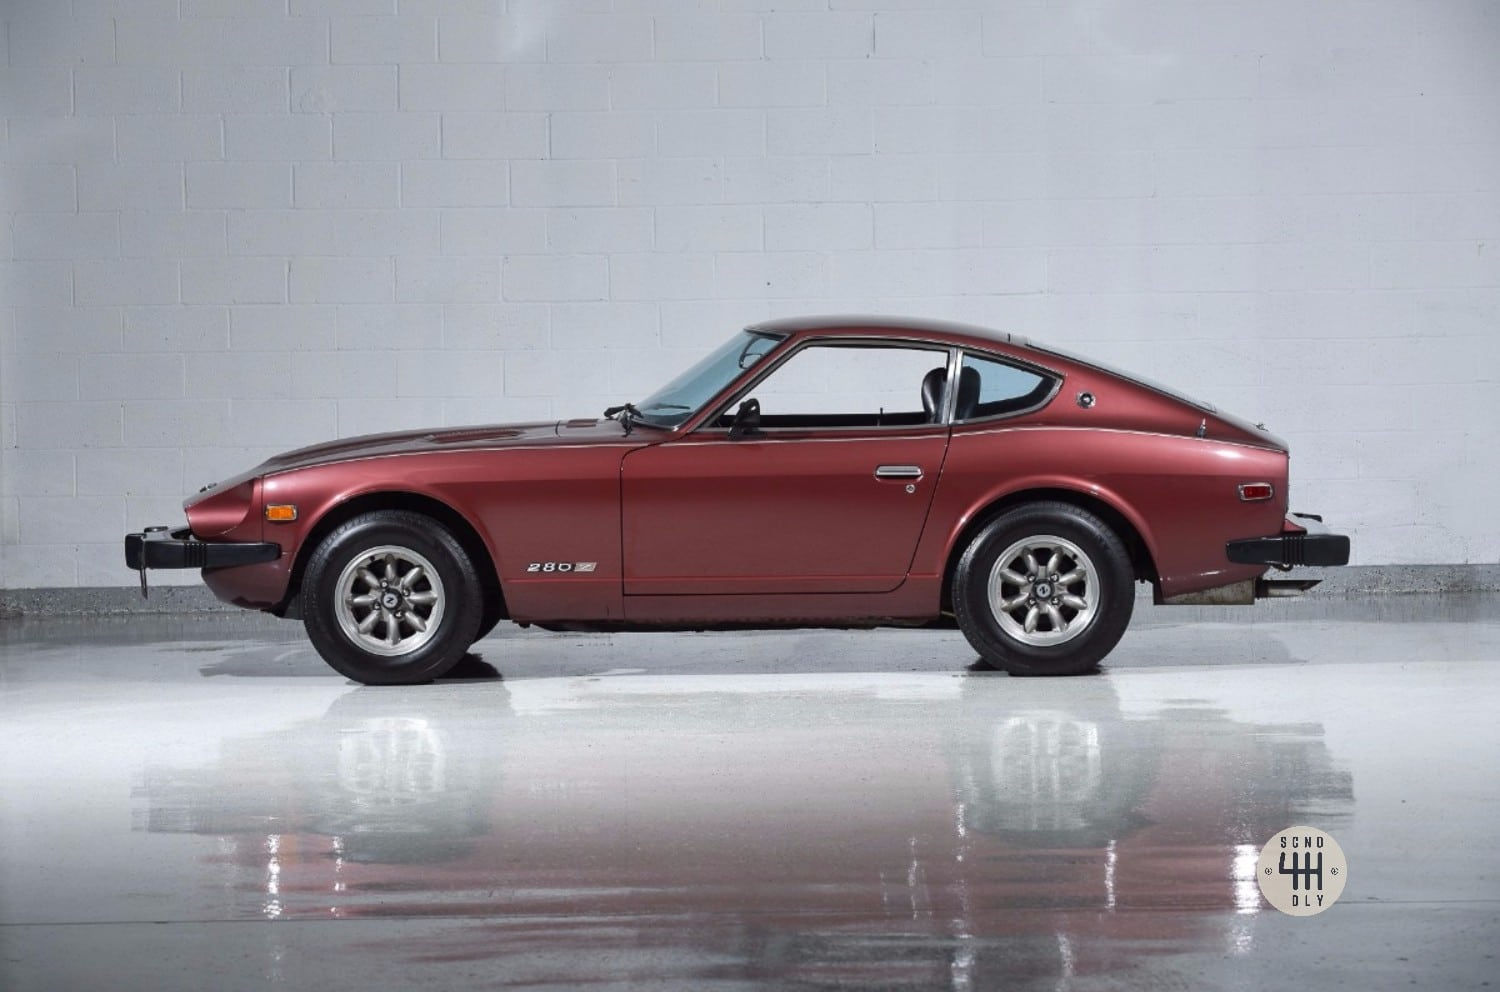 1978 DATSUN 280Z – All original 36k miles 4-sp manual